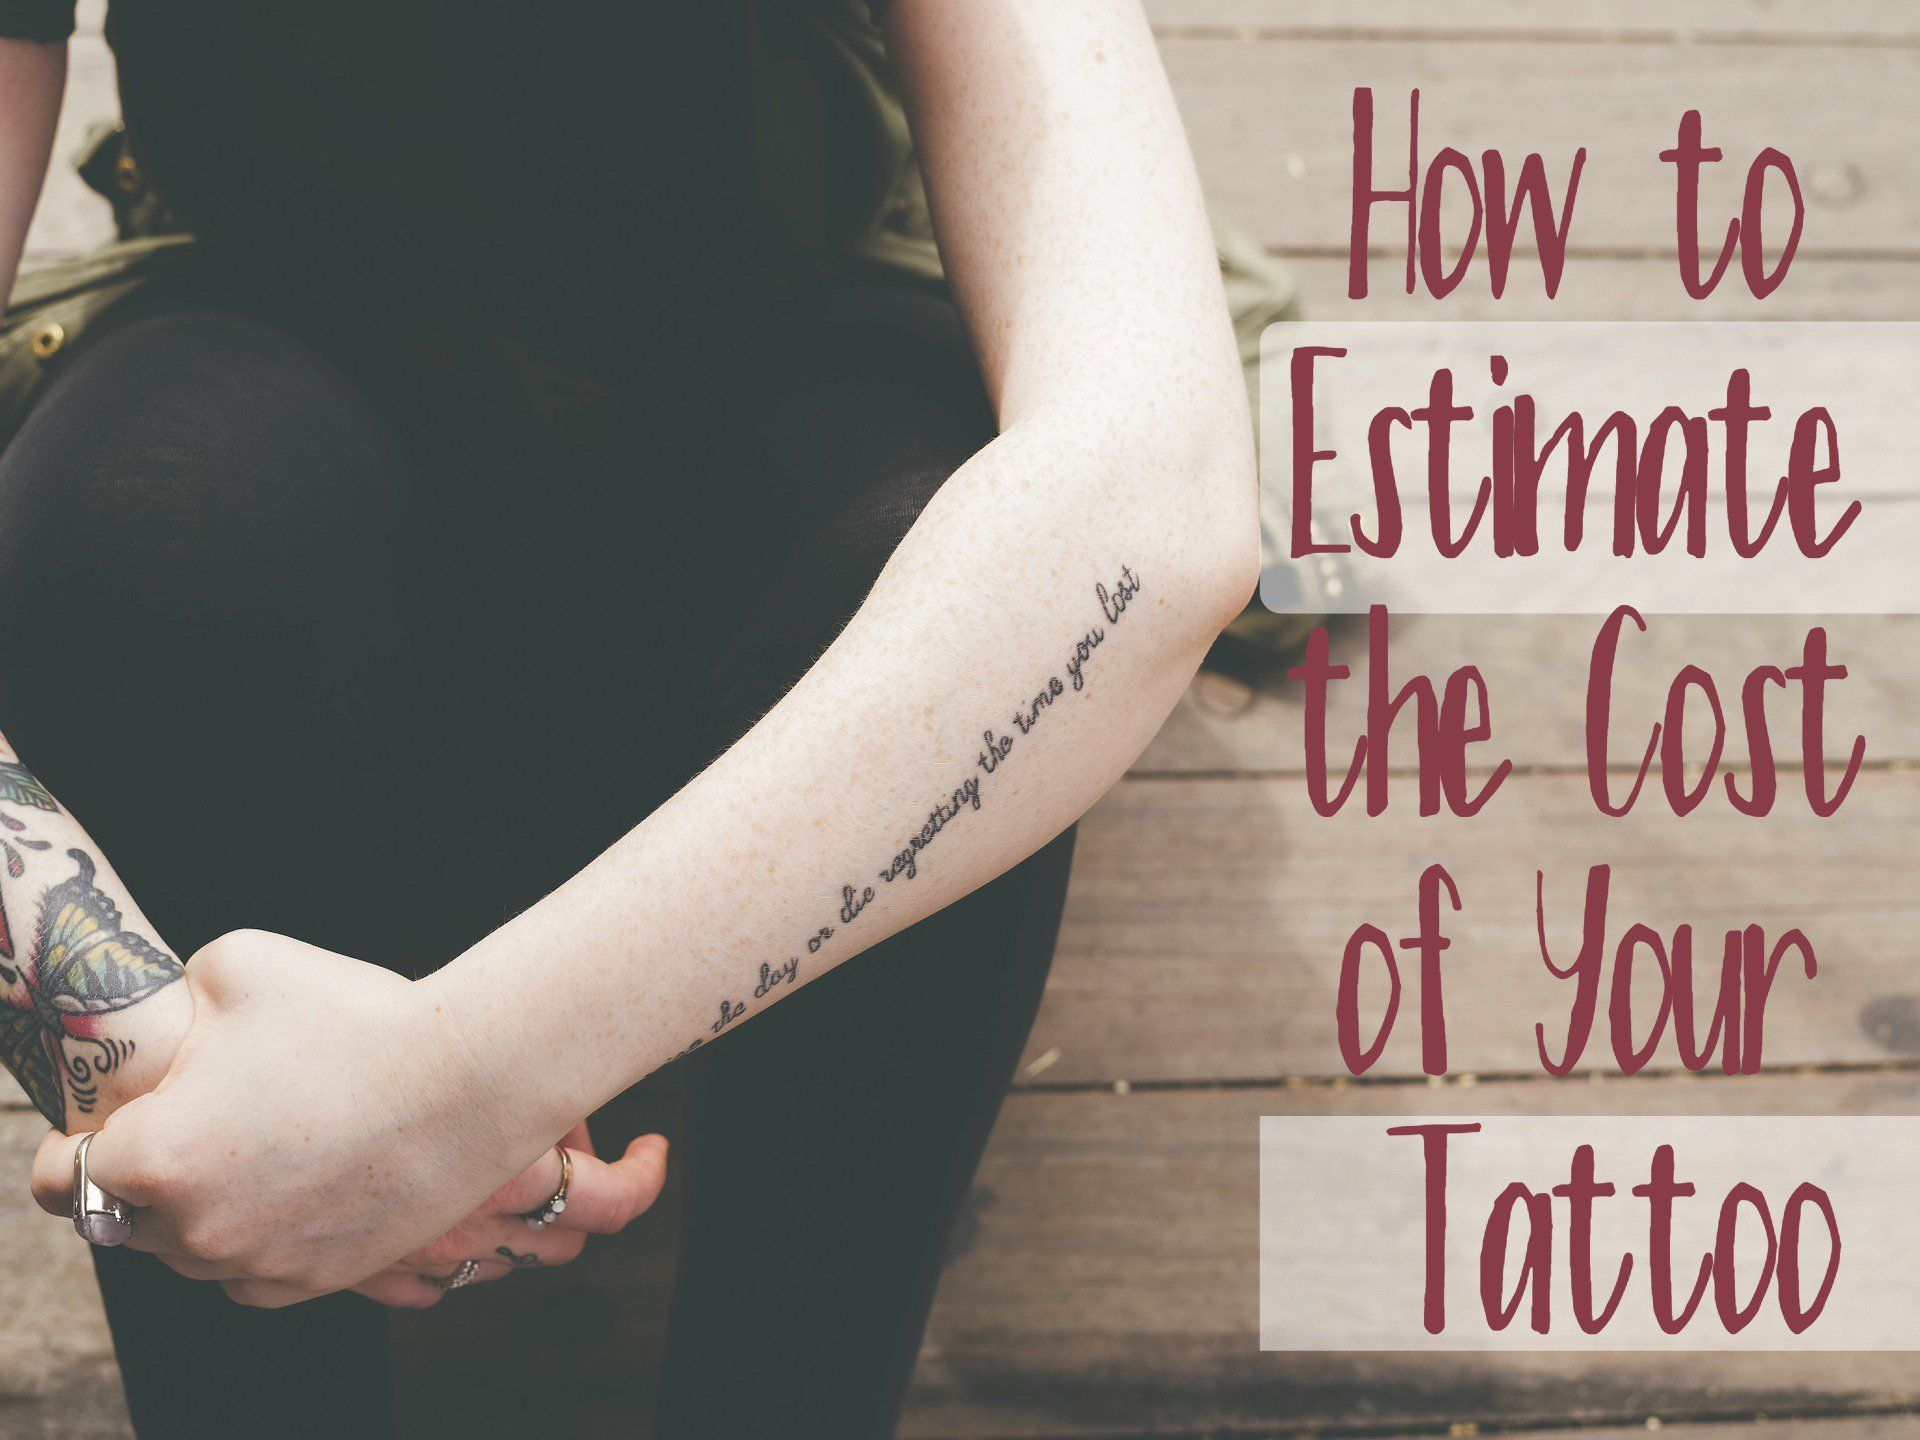 How much does a tattoo cost wrist tattoos for guys